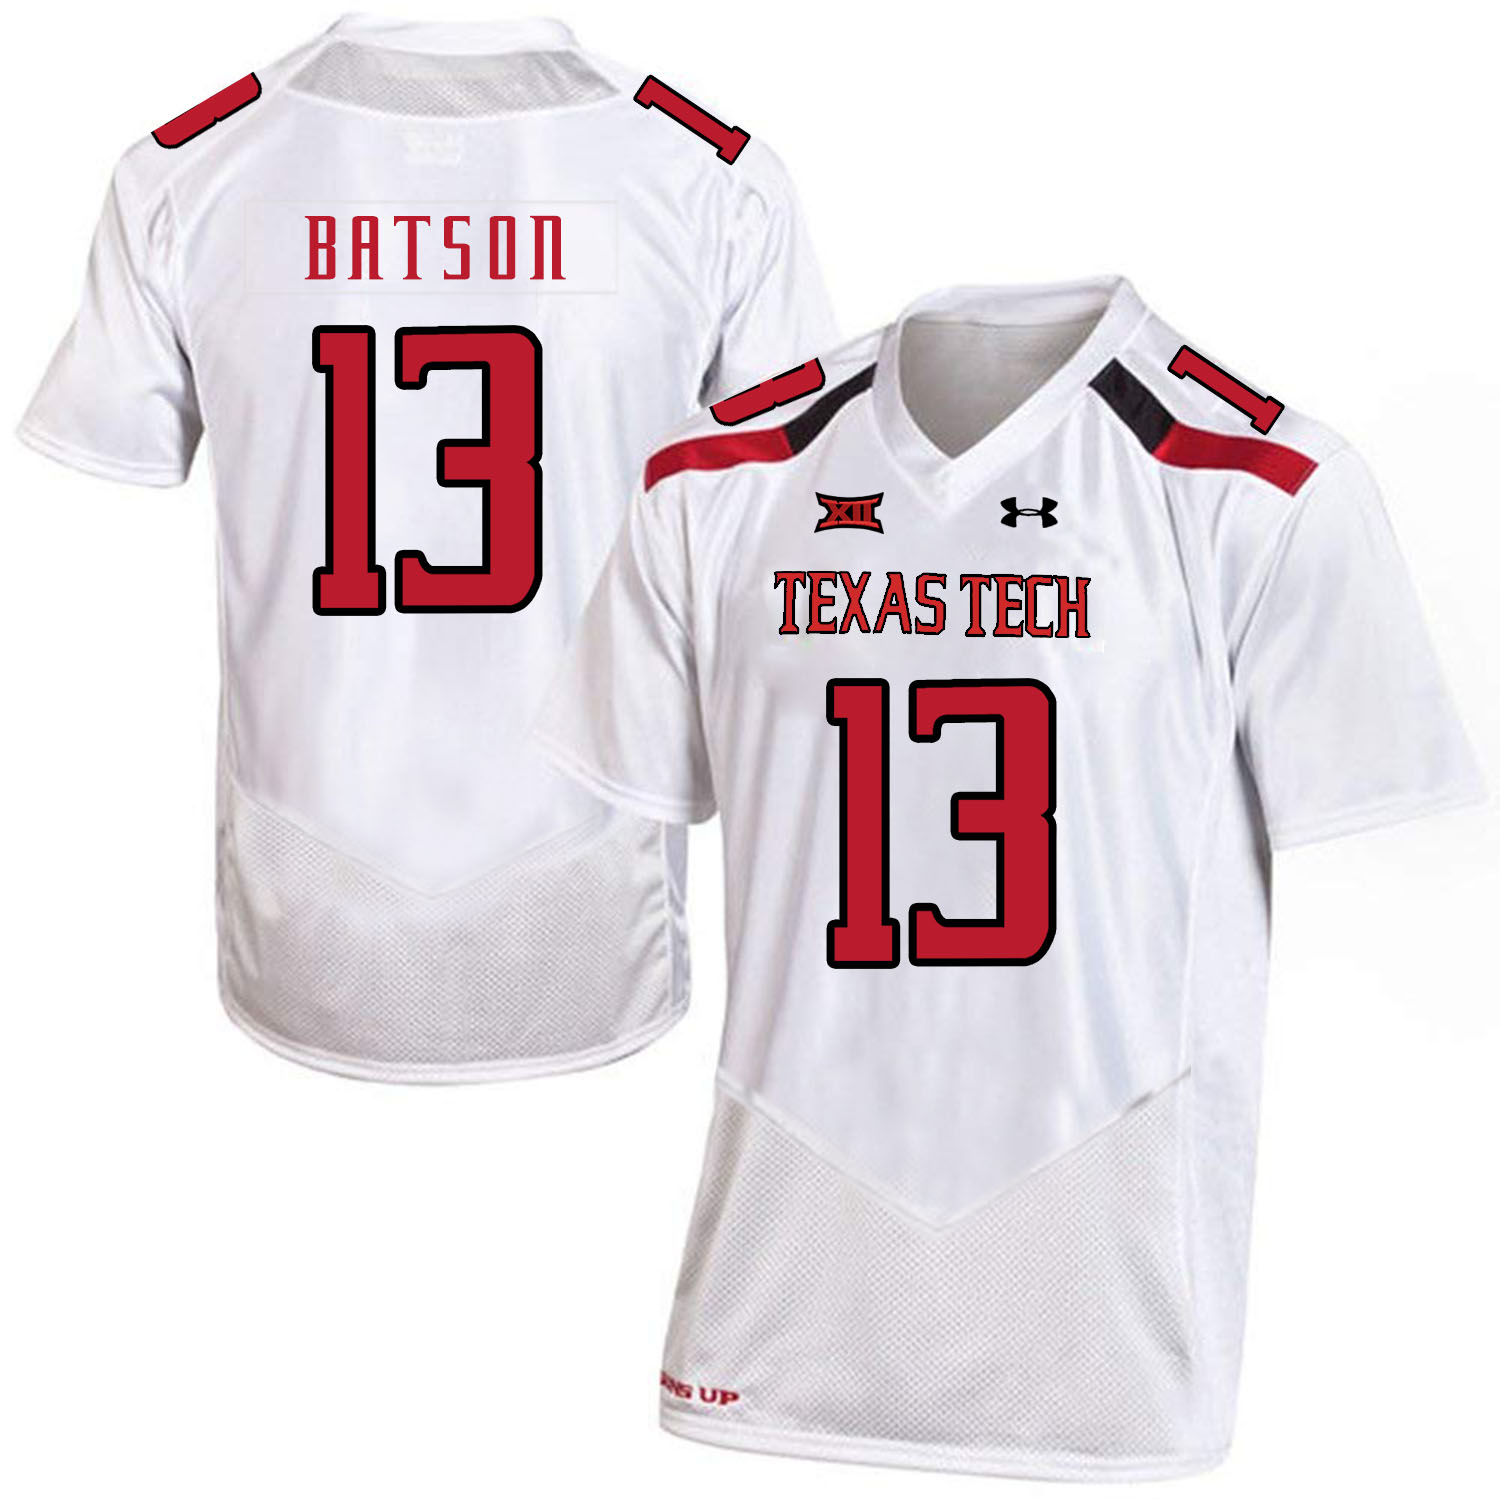 Texas Tech Red Raiders 13 Cameron Batson White College Football Jersey